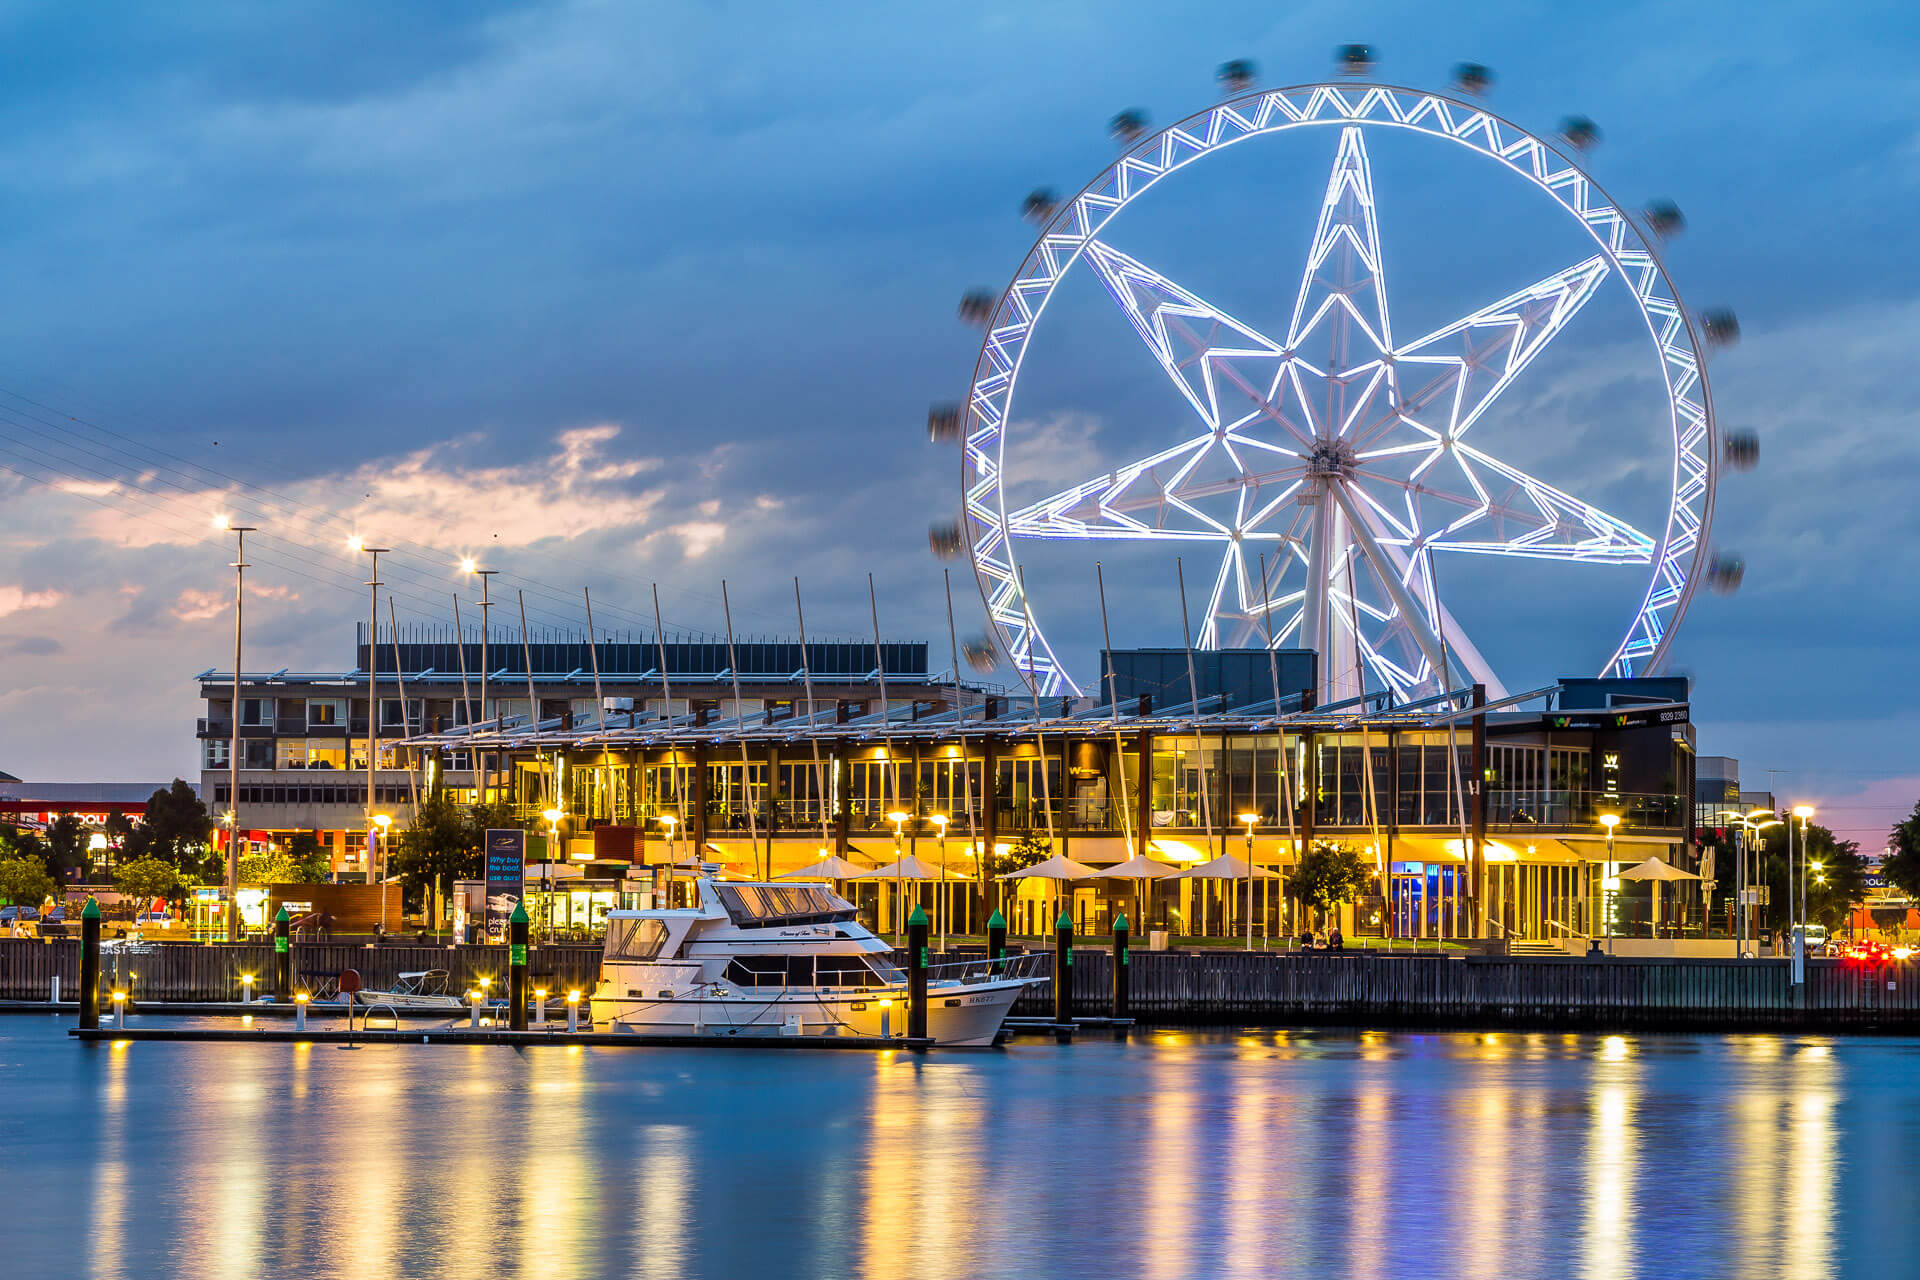 docklands and observation wheel decorated with lights